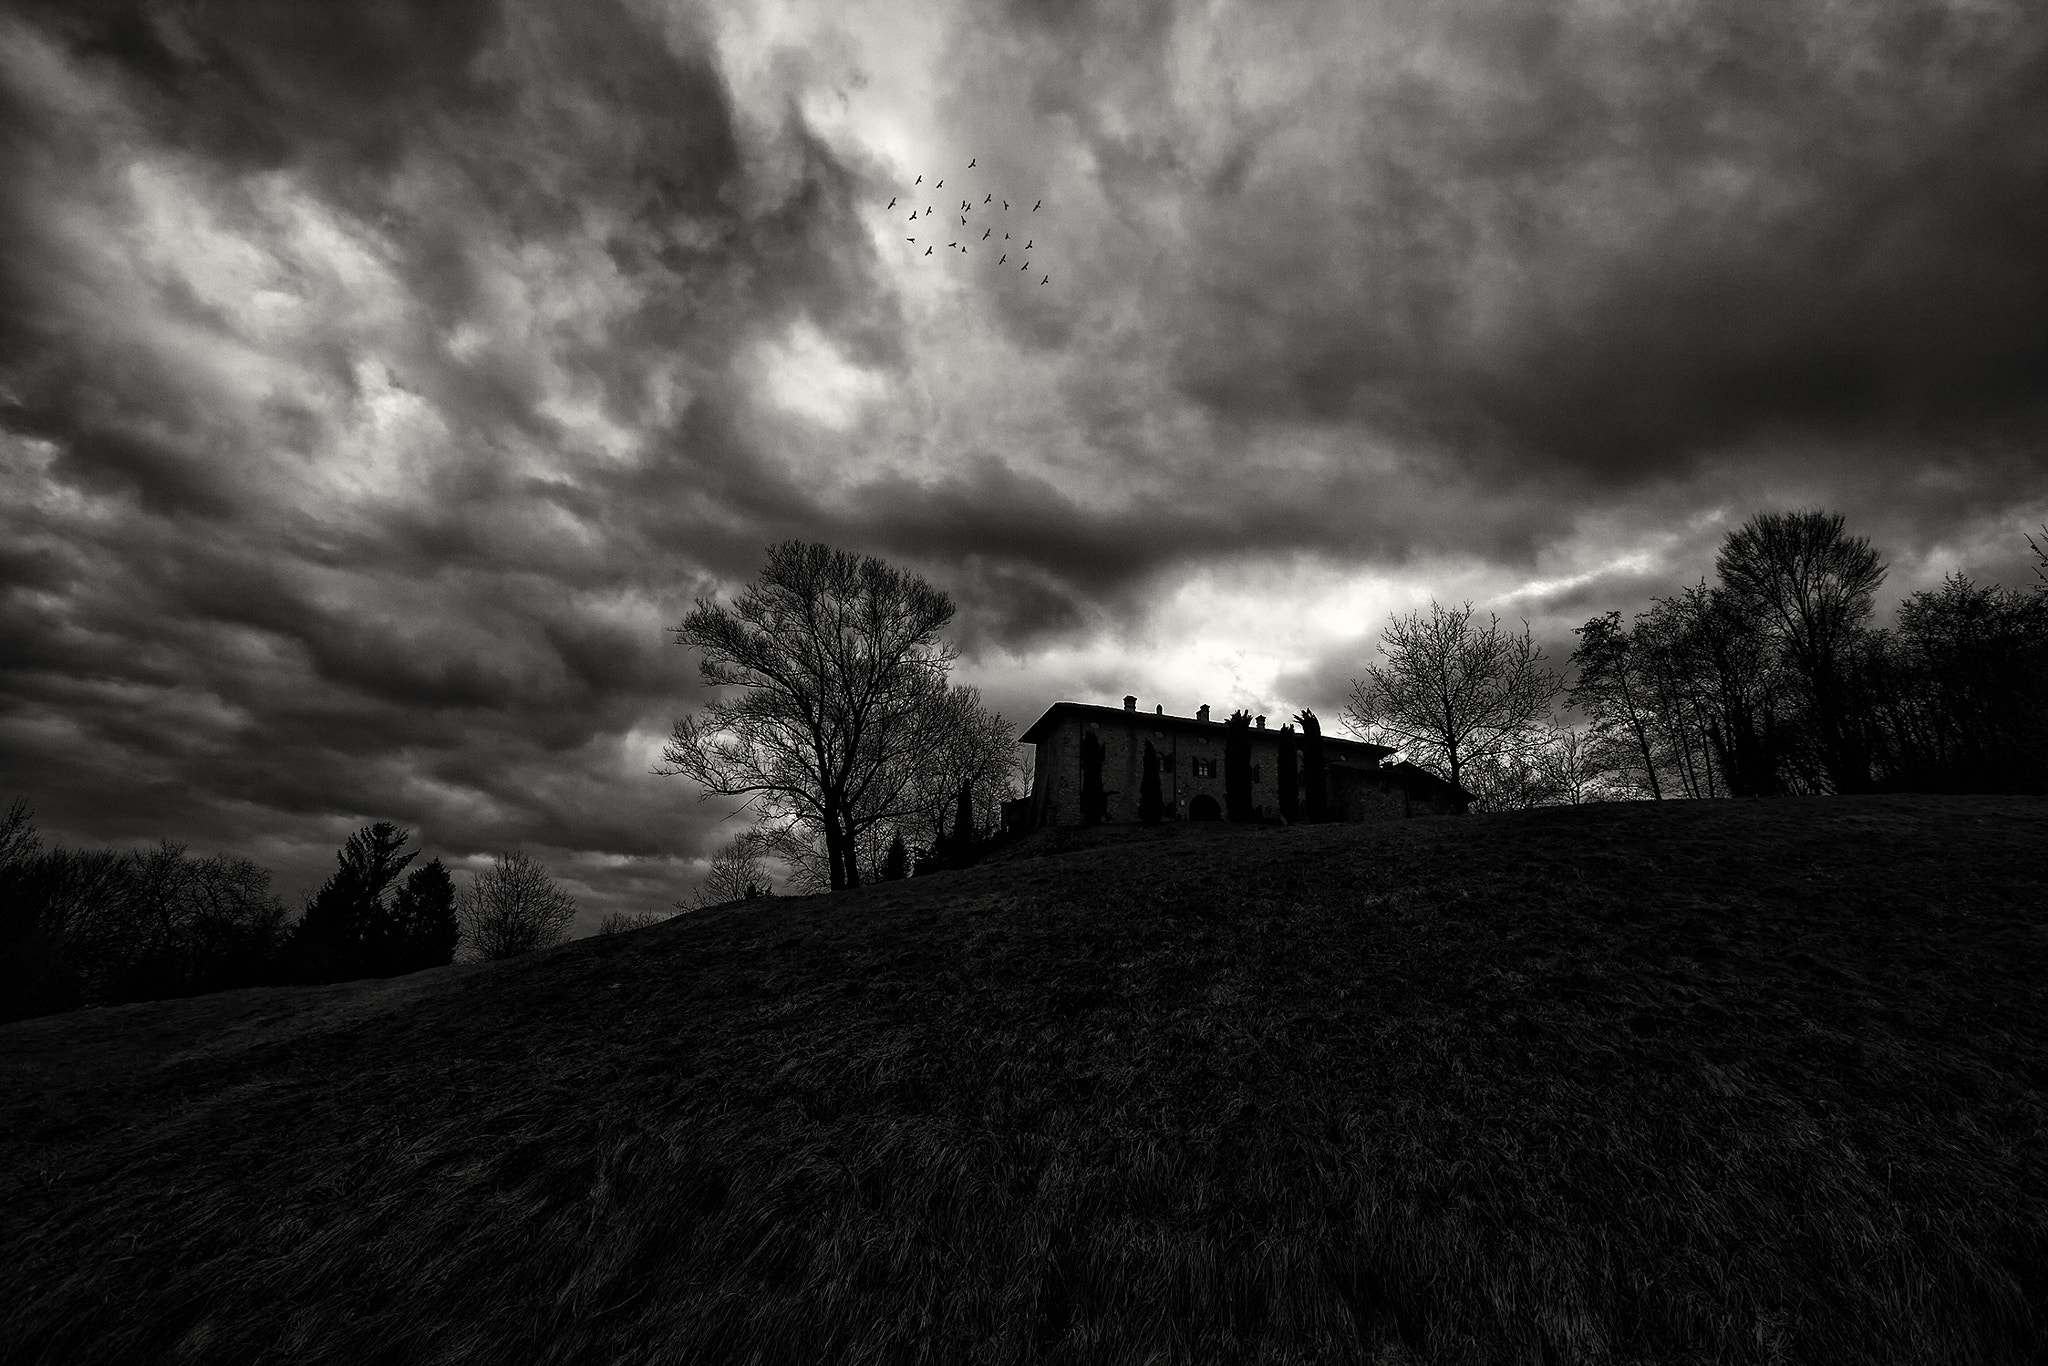 Photograph The house by Marco Redaelli on 500px